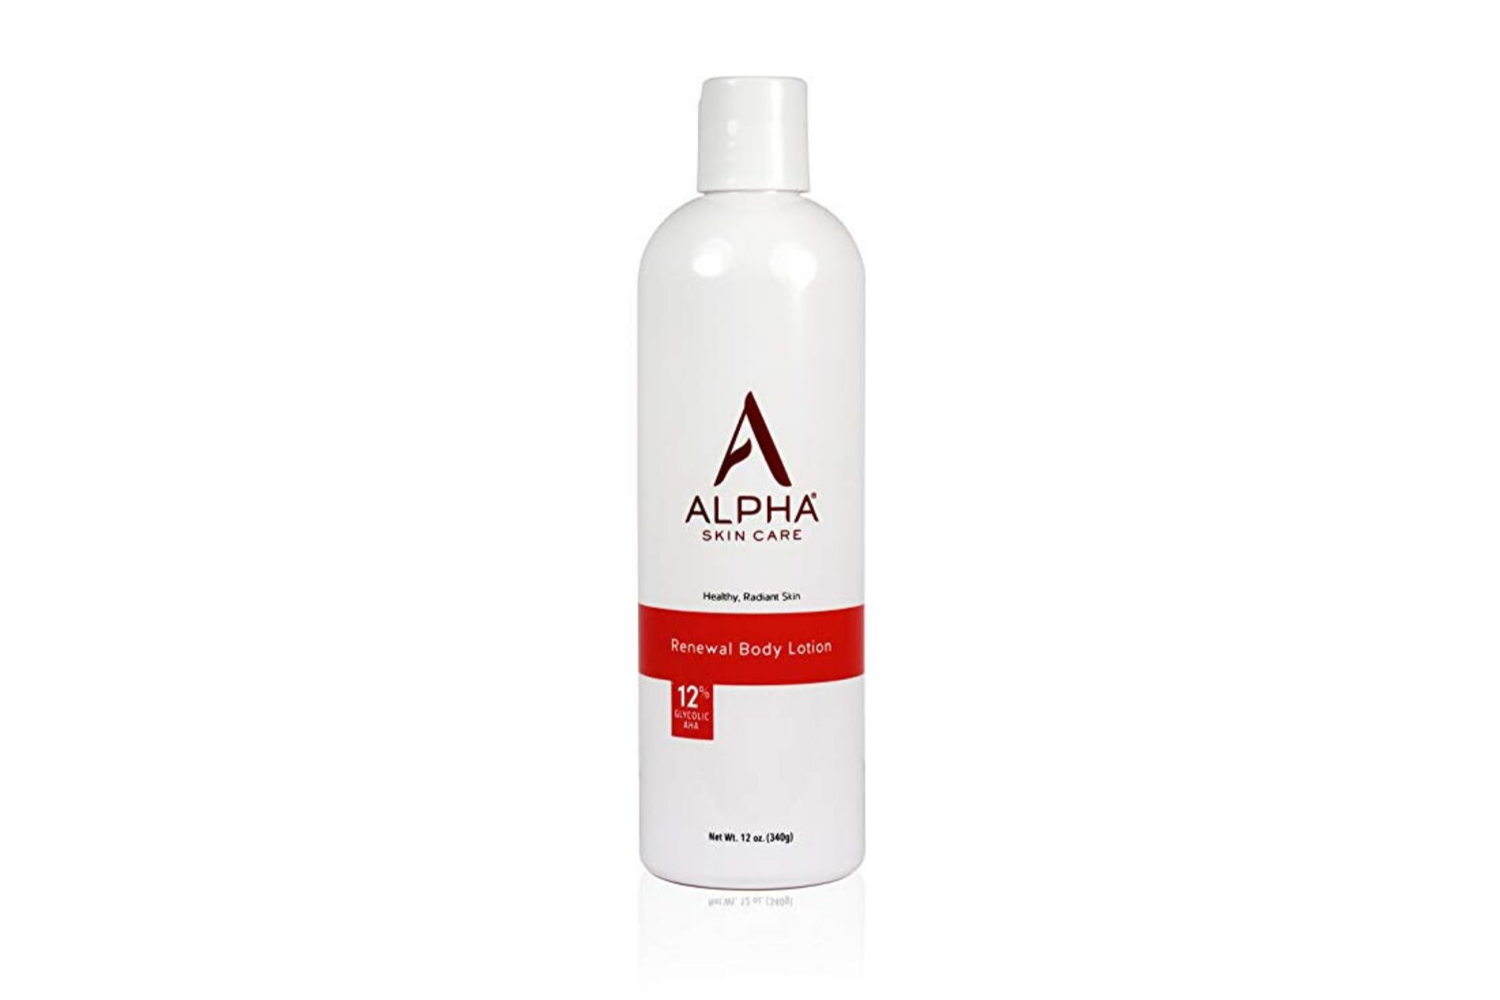 Alpha Skin Care Glycolic Body Lotions